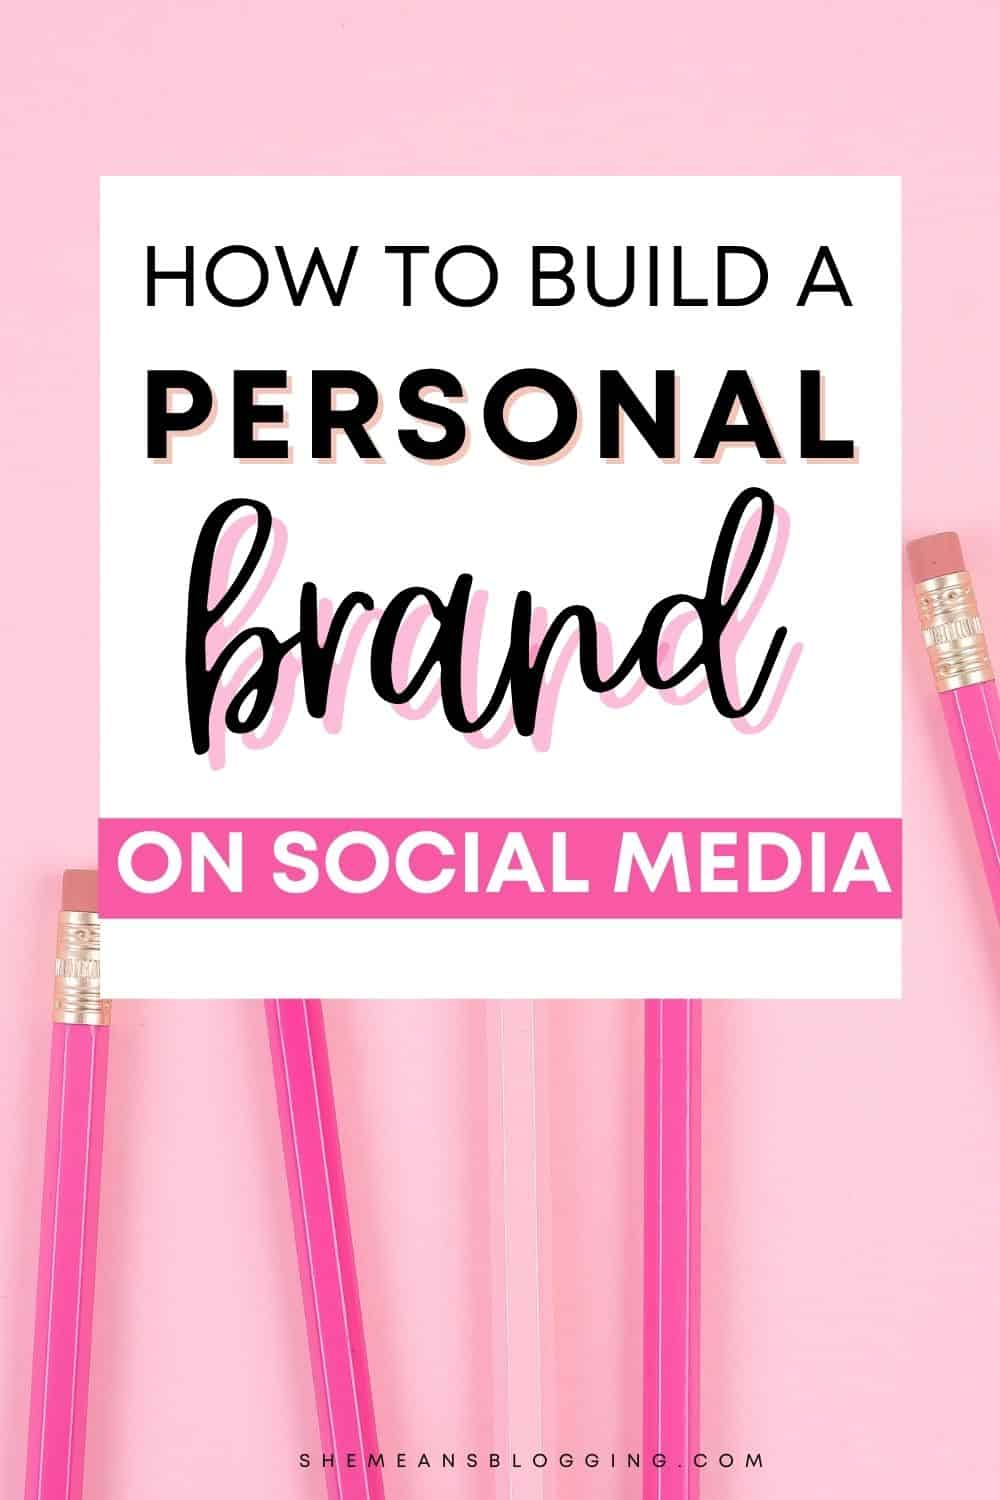 What it takes to build a strong personal brand on social media? Here are 5 must follow strategies for building a social media brand. Use these branding tips to make your own successful social media brand. #brandingtips #businesstips